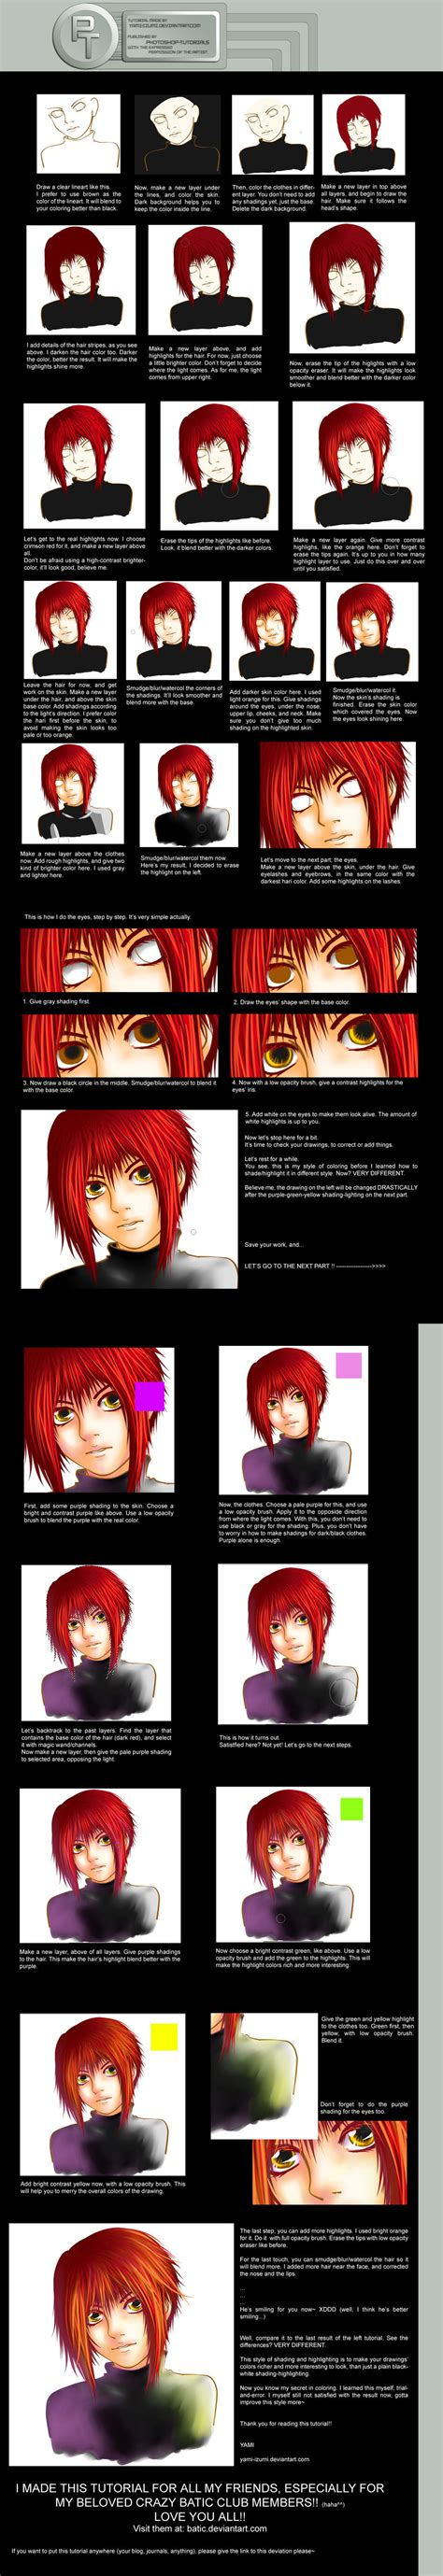 adobe photoshop shading tutorial contrast shading t by photoshop tutorials on deviantart